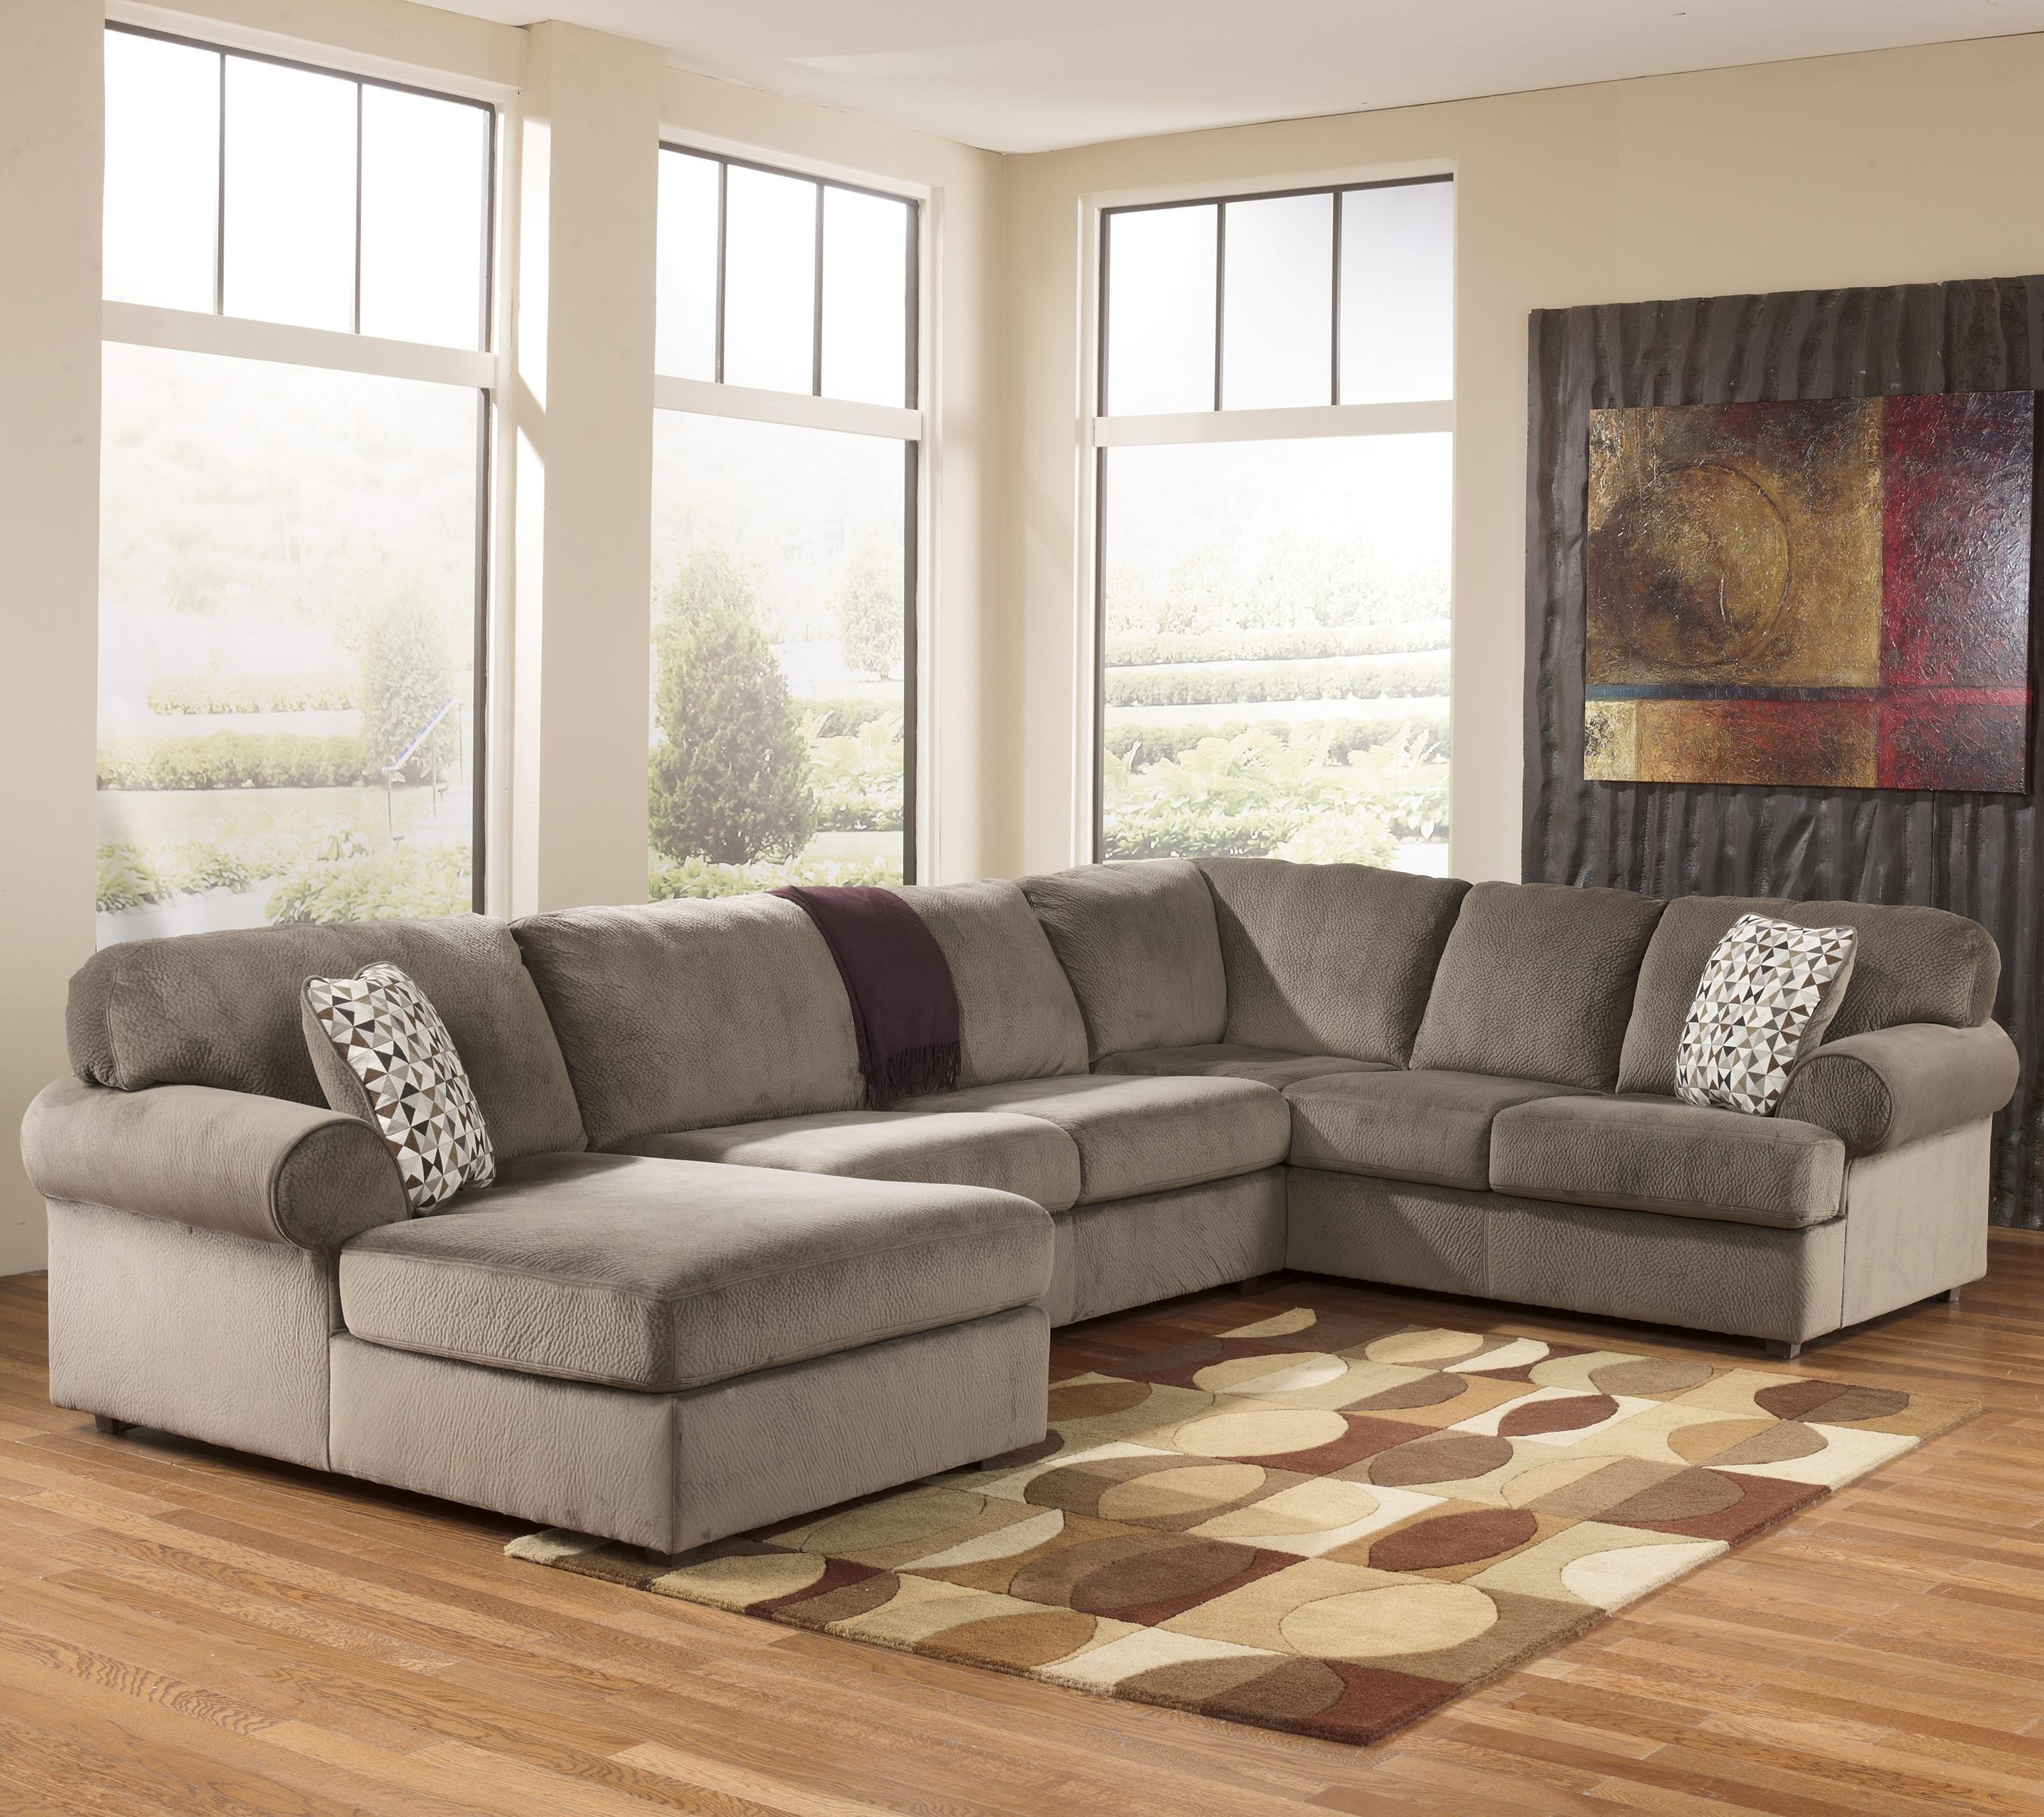 cuddler sectional patina piece products small with right sofa park item ashley furniture patola